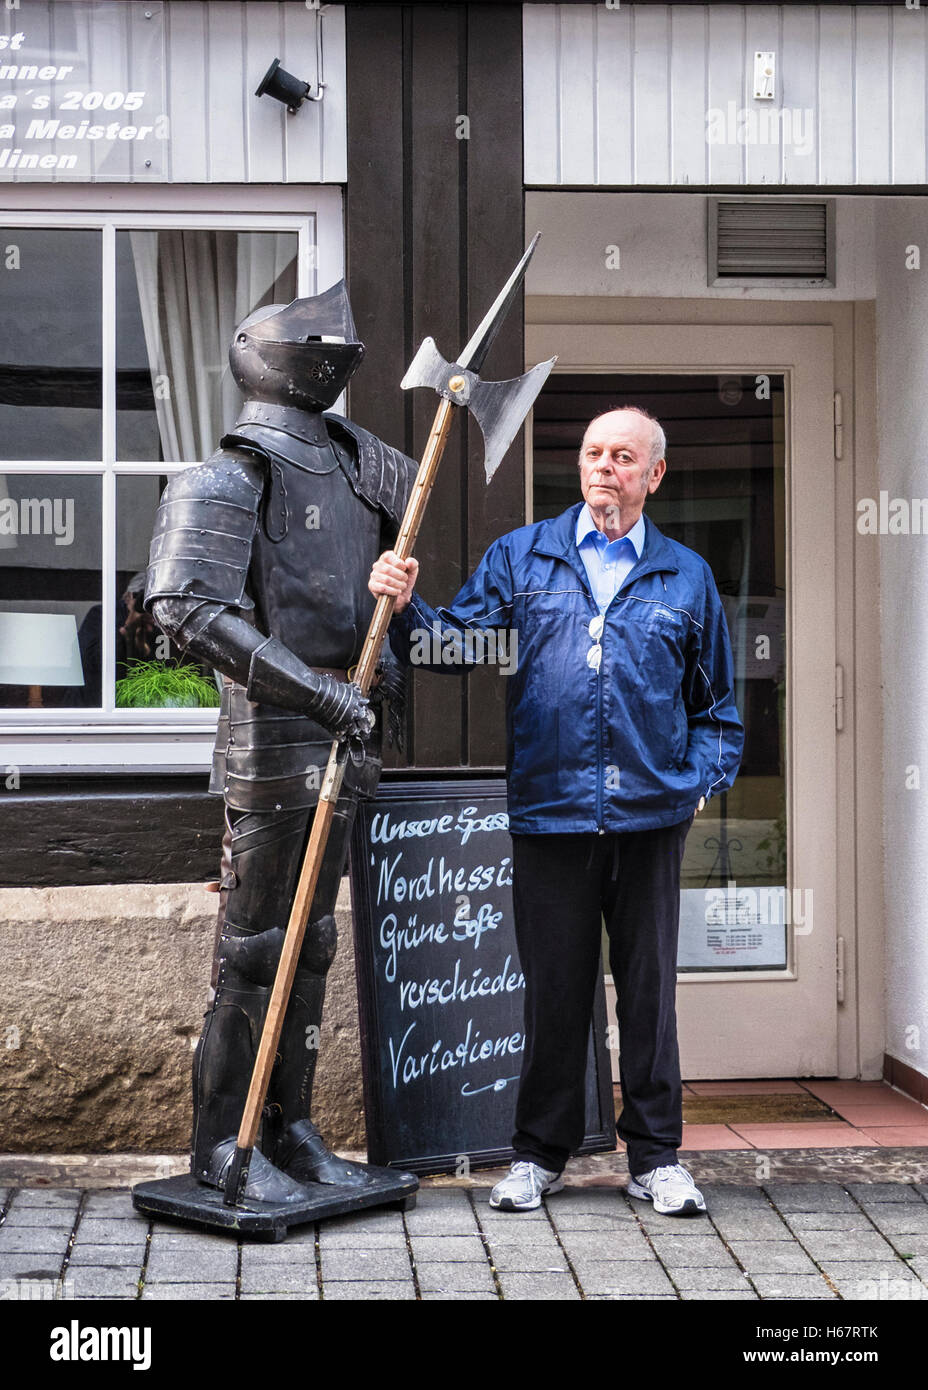 Senior man standing with Suit of armor outside restaurant in Hann. Münden, Lower Saxony, Germany - Stock Image